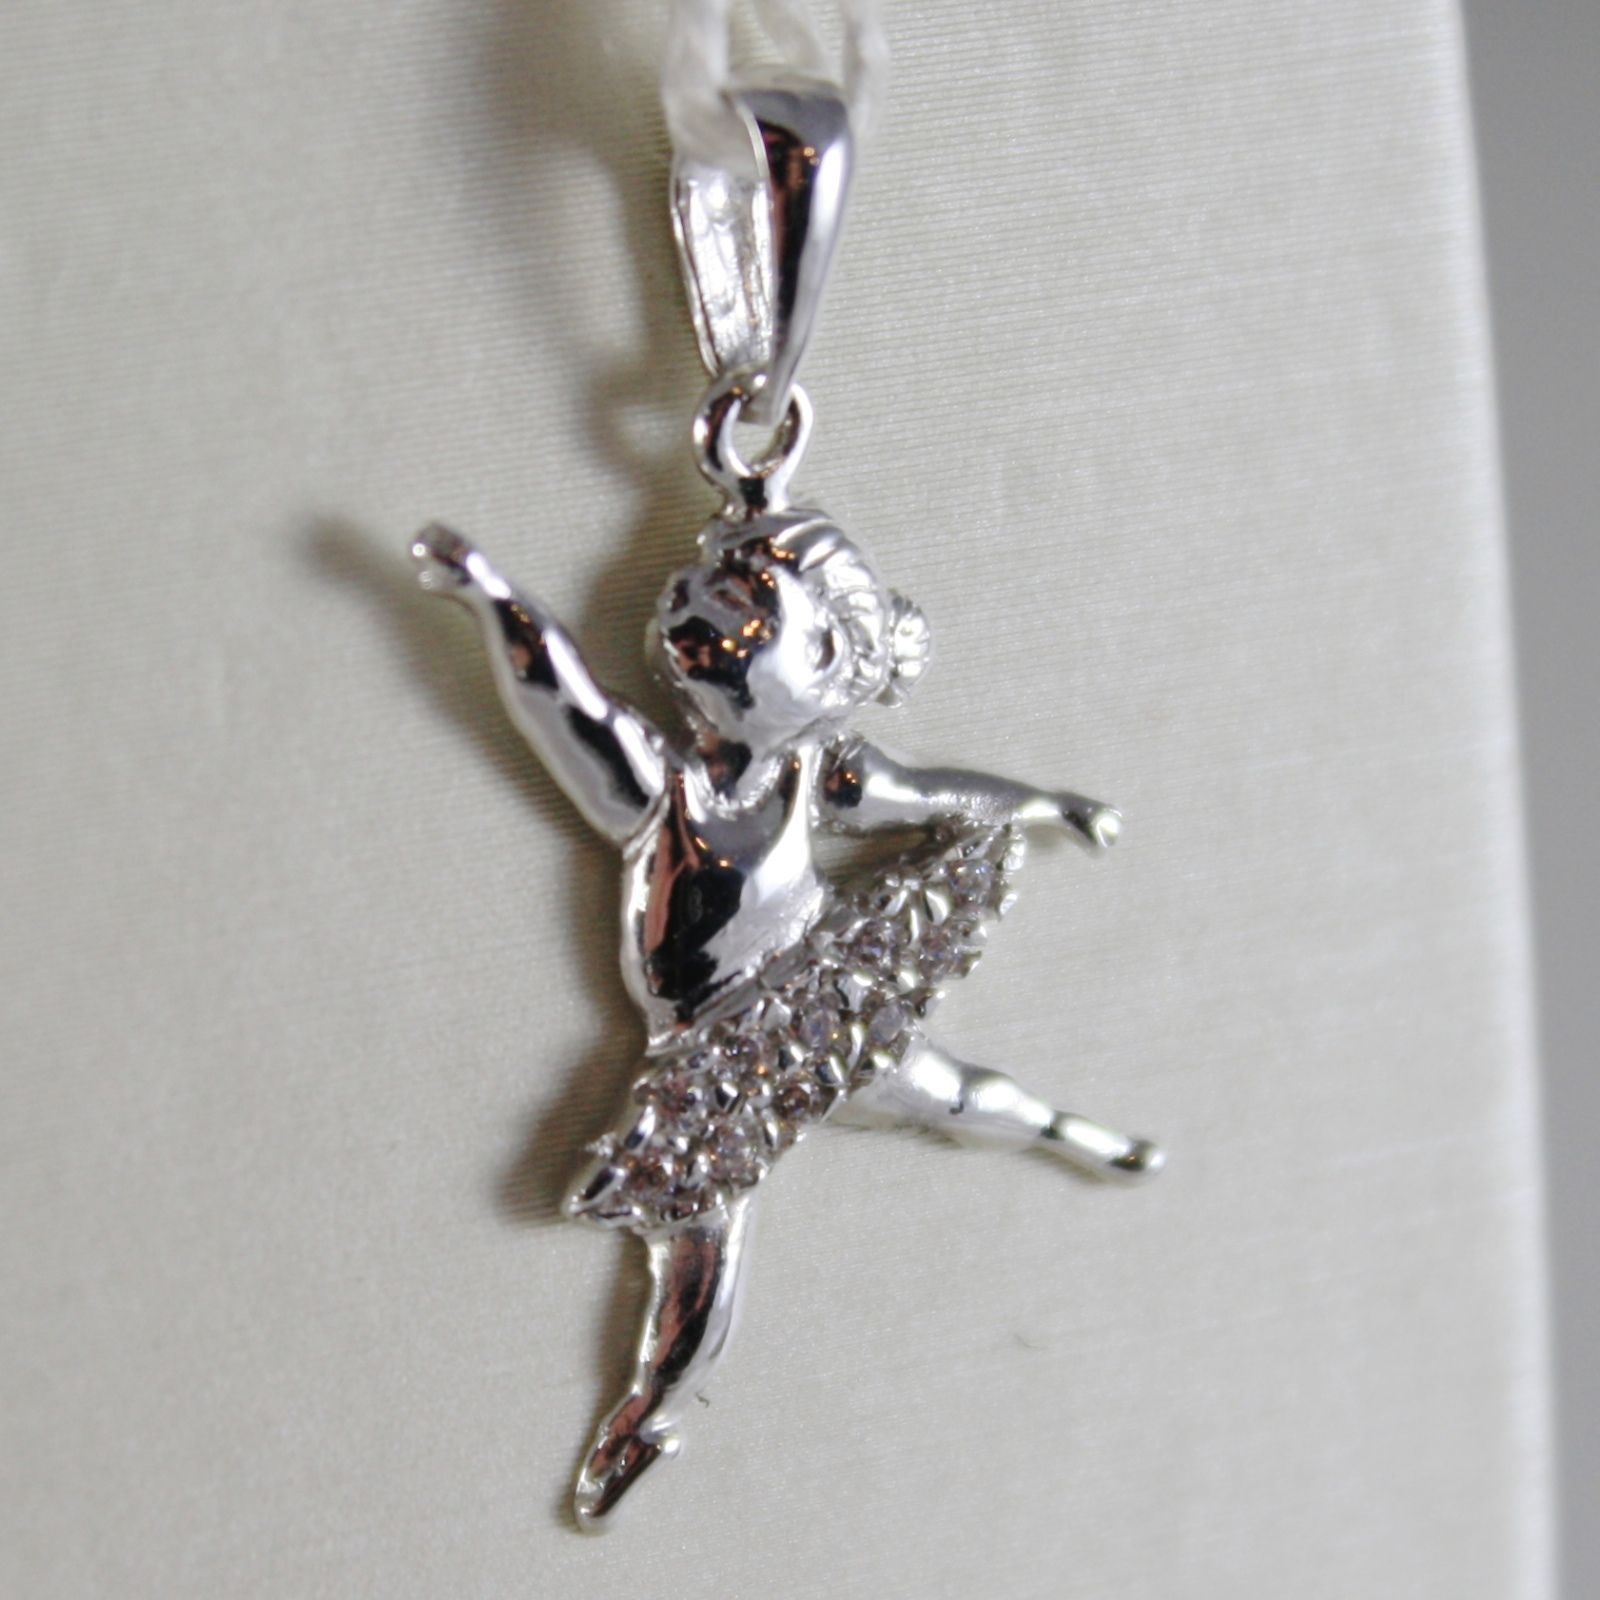 18K WHITE GOLD DANCER BALLET BALLERINA PENDANT CHARM WITH ZIRCONIA MADE IN ITALY